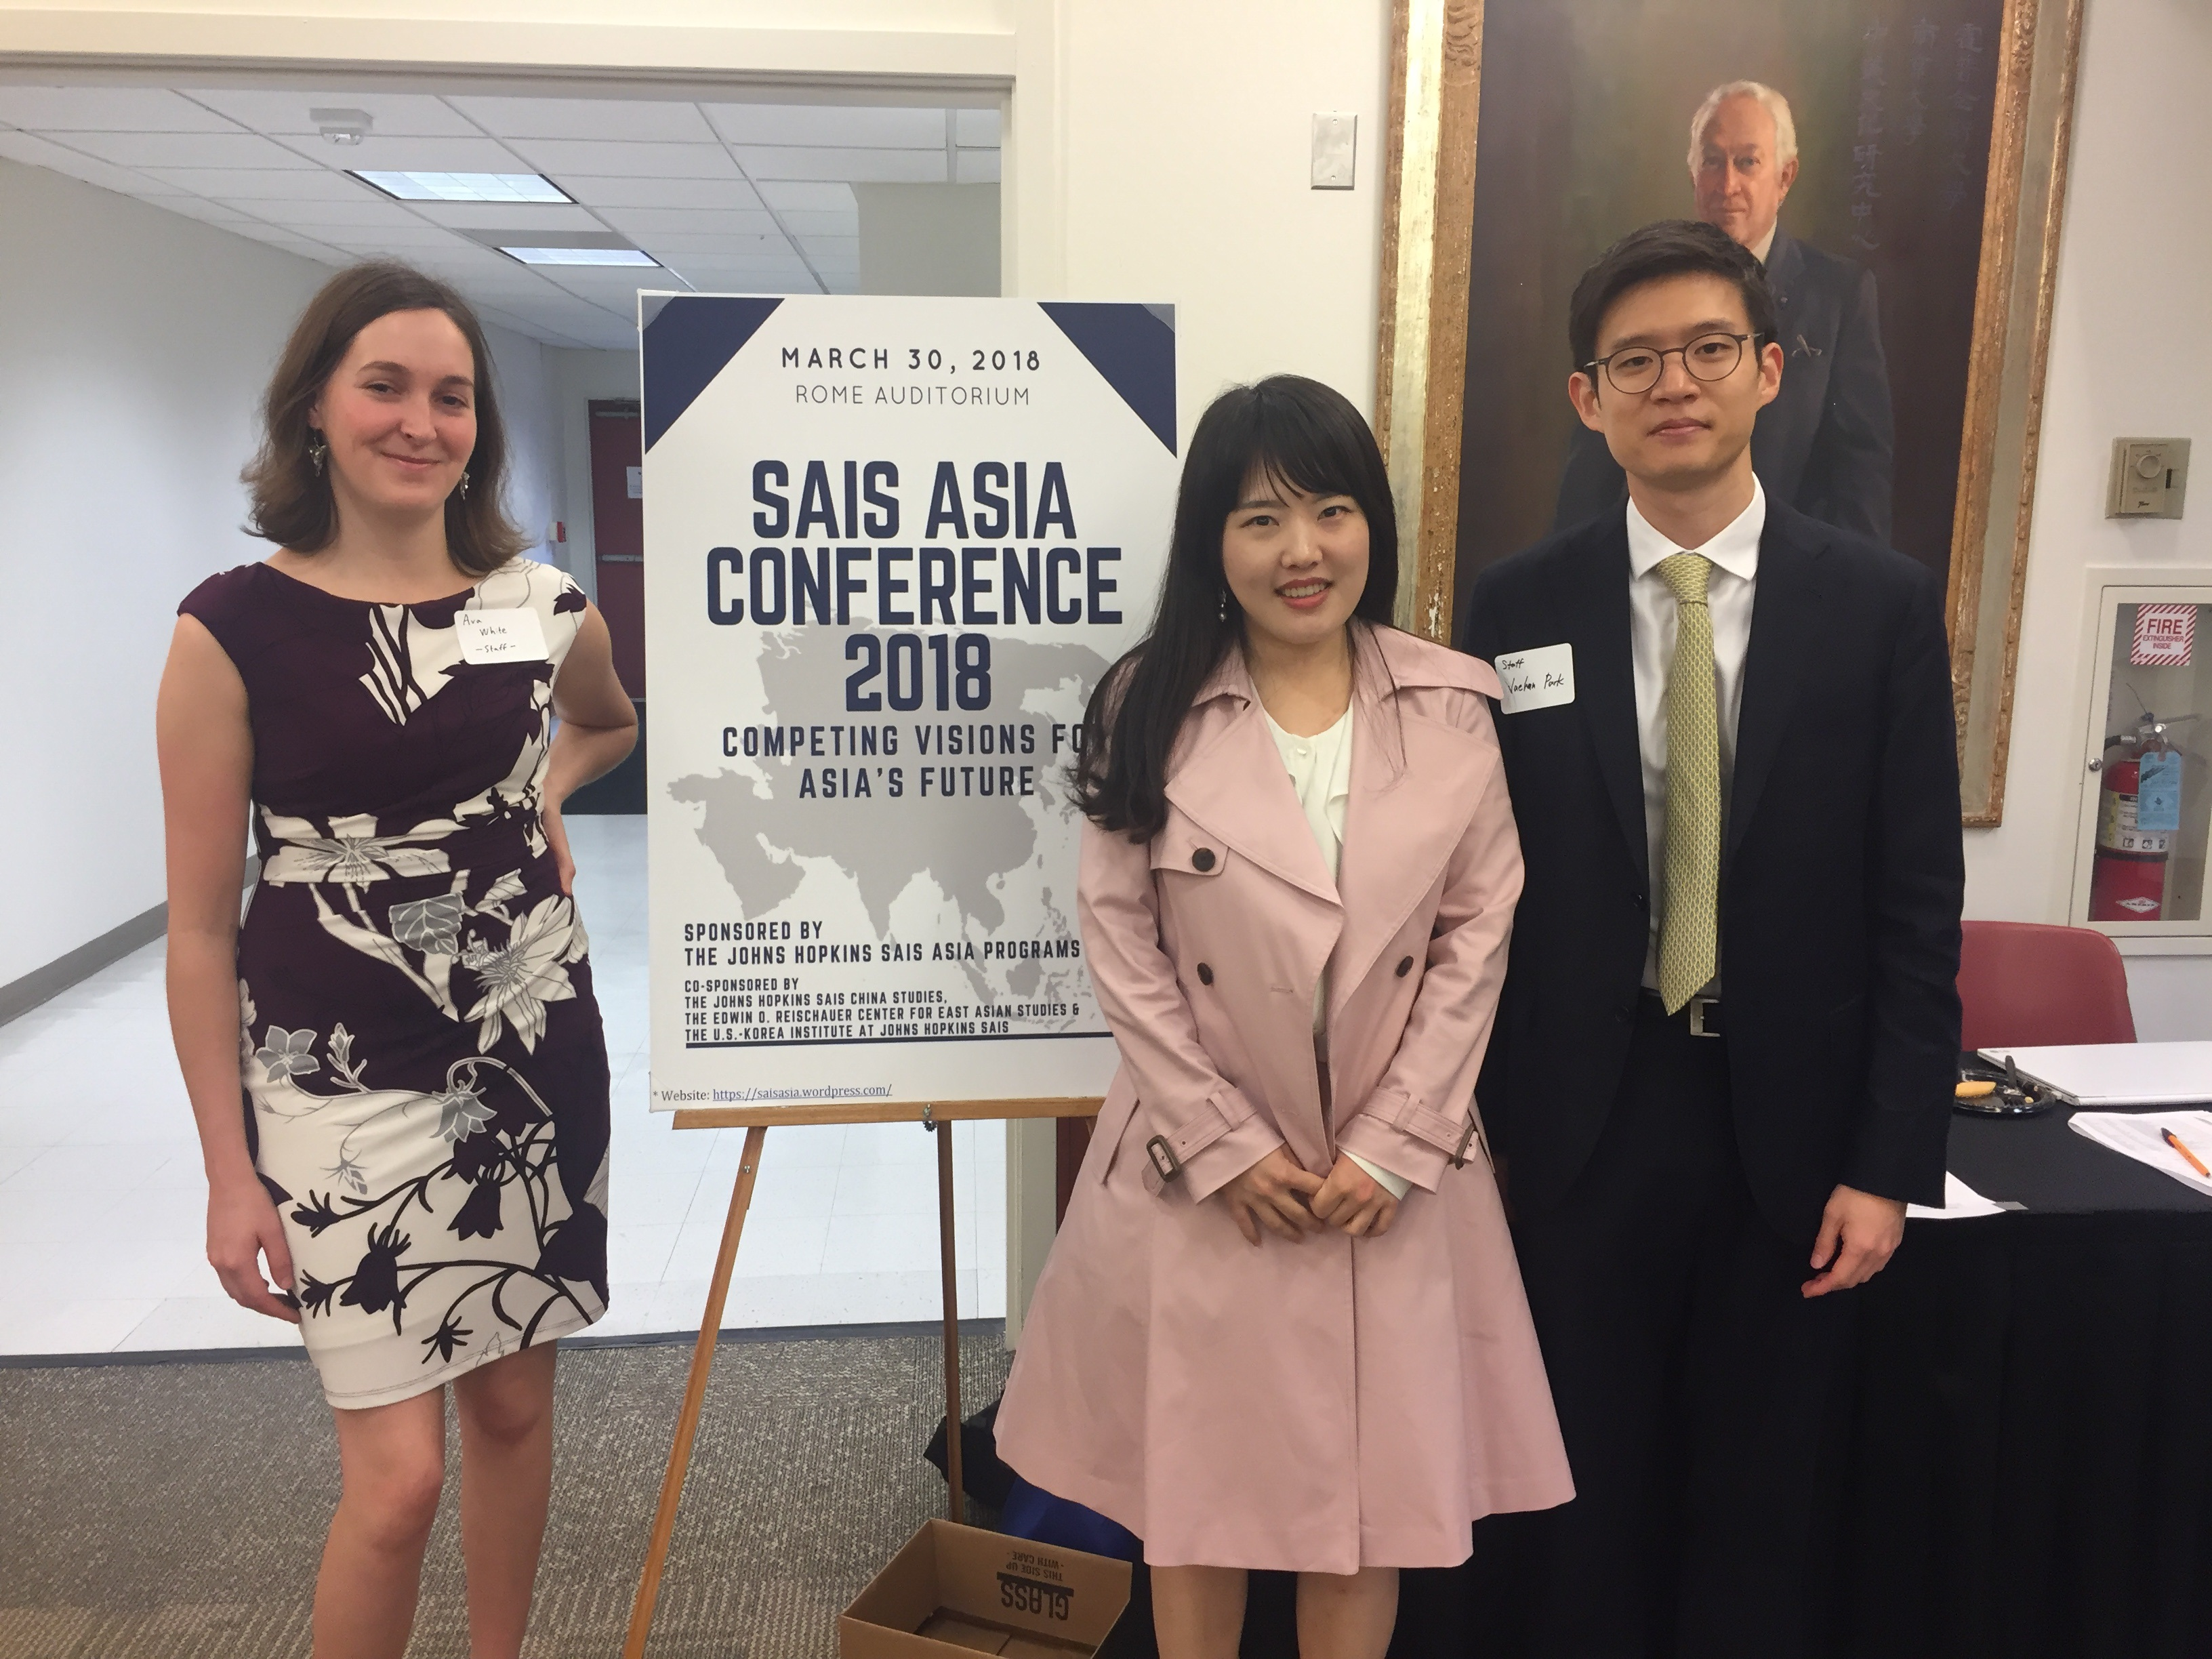 The student organizers of the SAIS Asia Conference